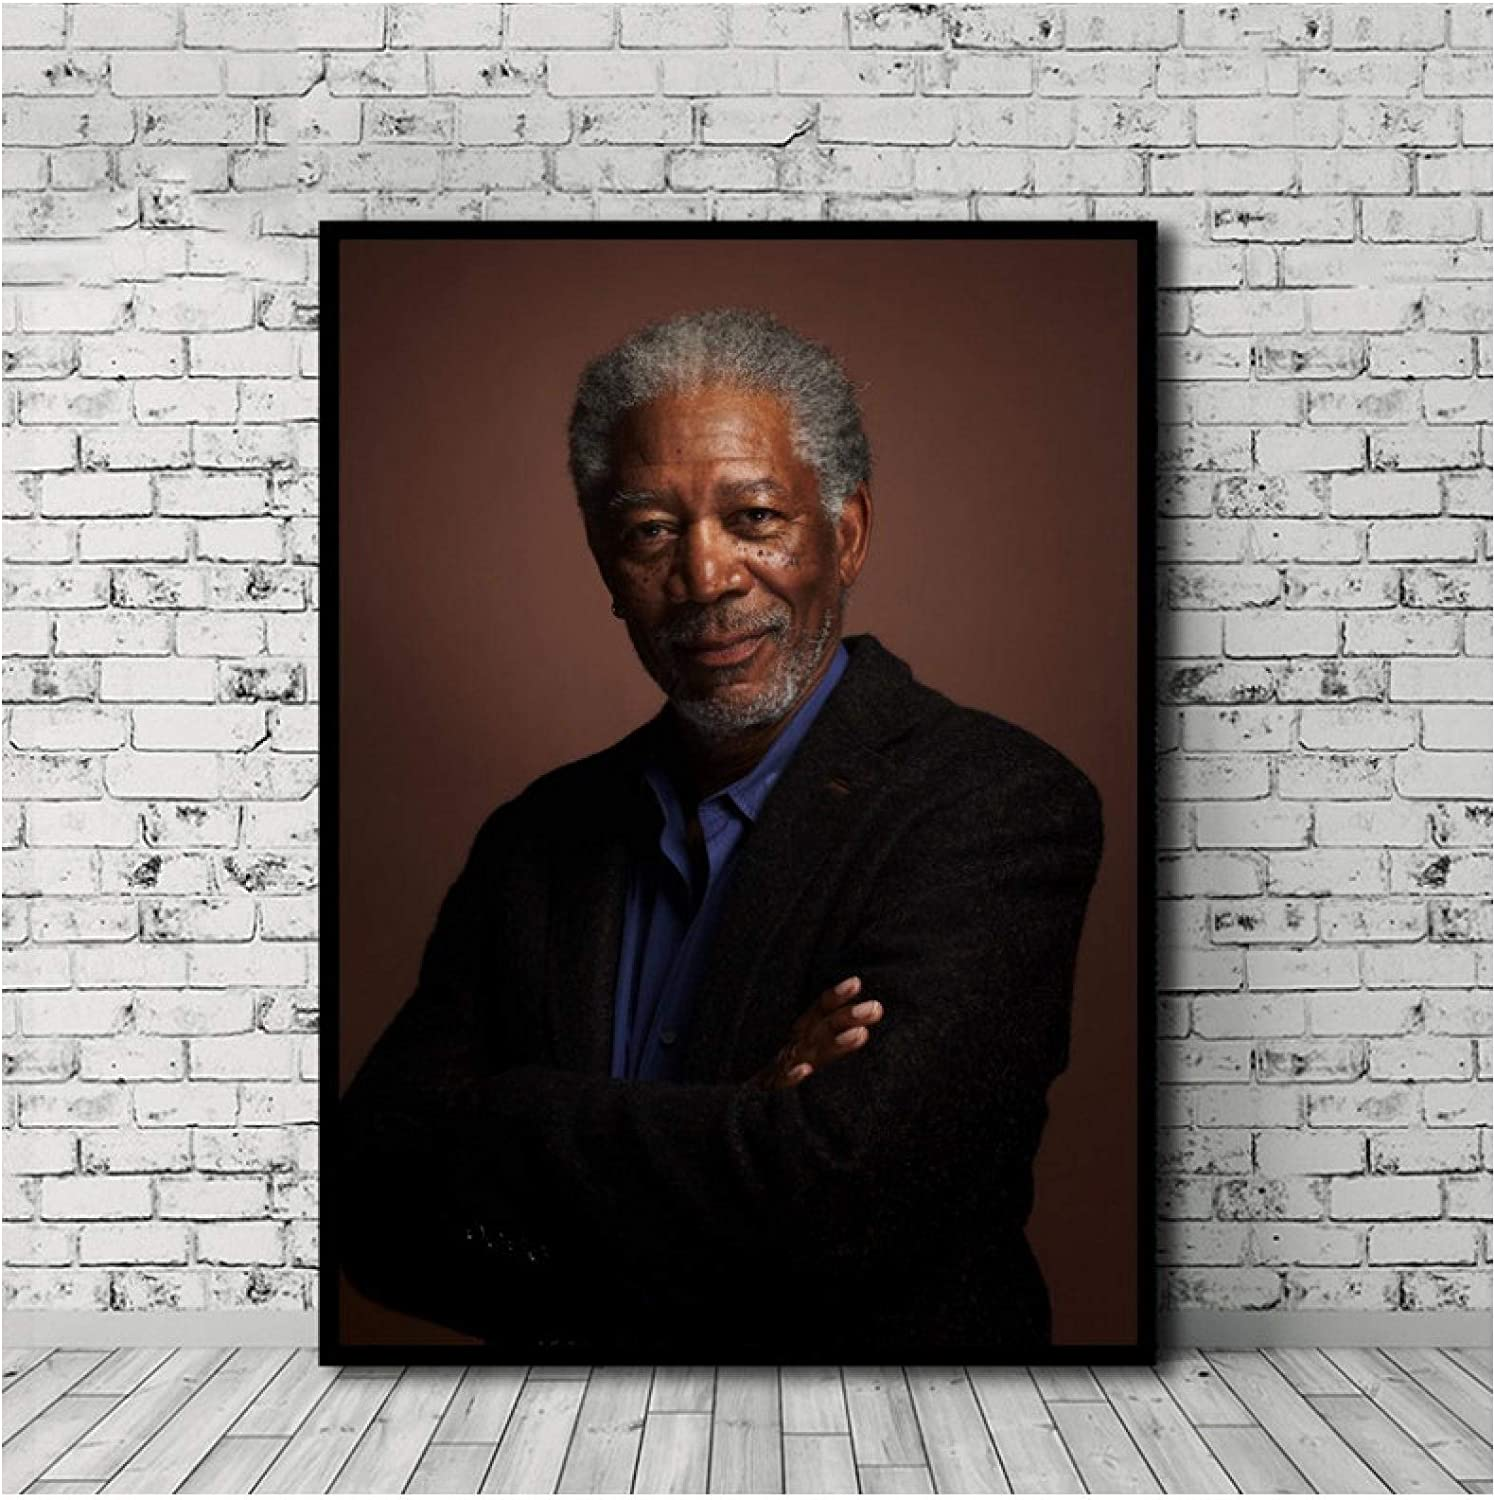 LYWUSUZE Morgan Freeman Star Classic Poster Canvas Painting Print Poster Wall Canvas Living Room Artwork Decoration Gift -60x80cm No Frame